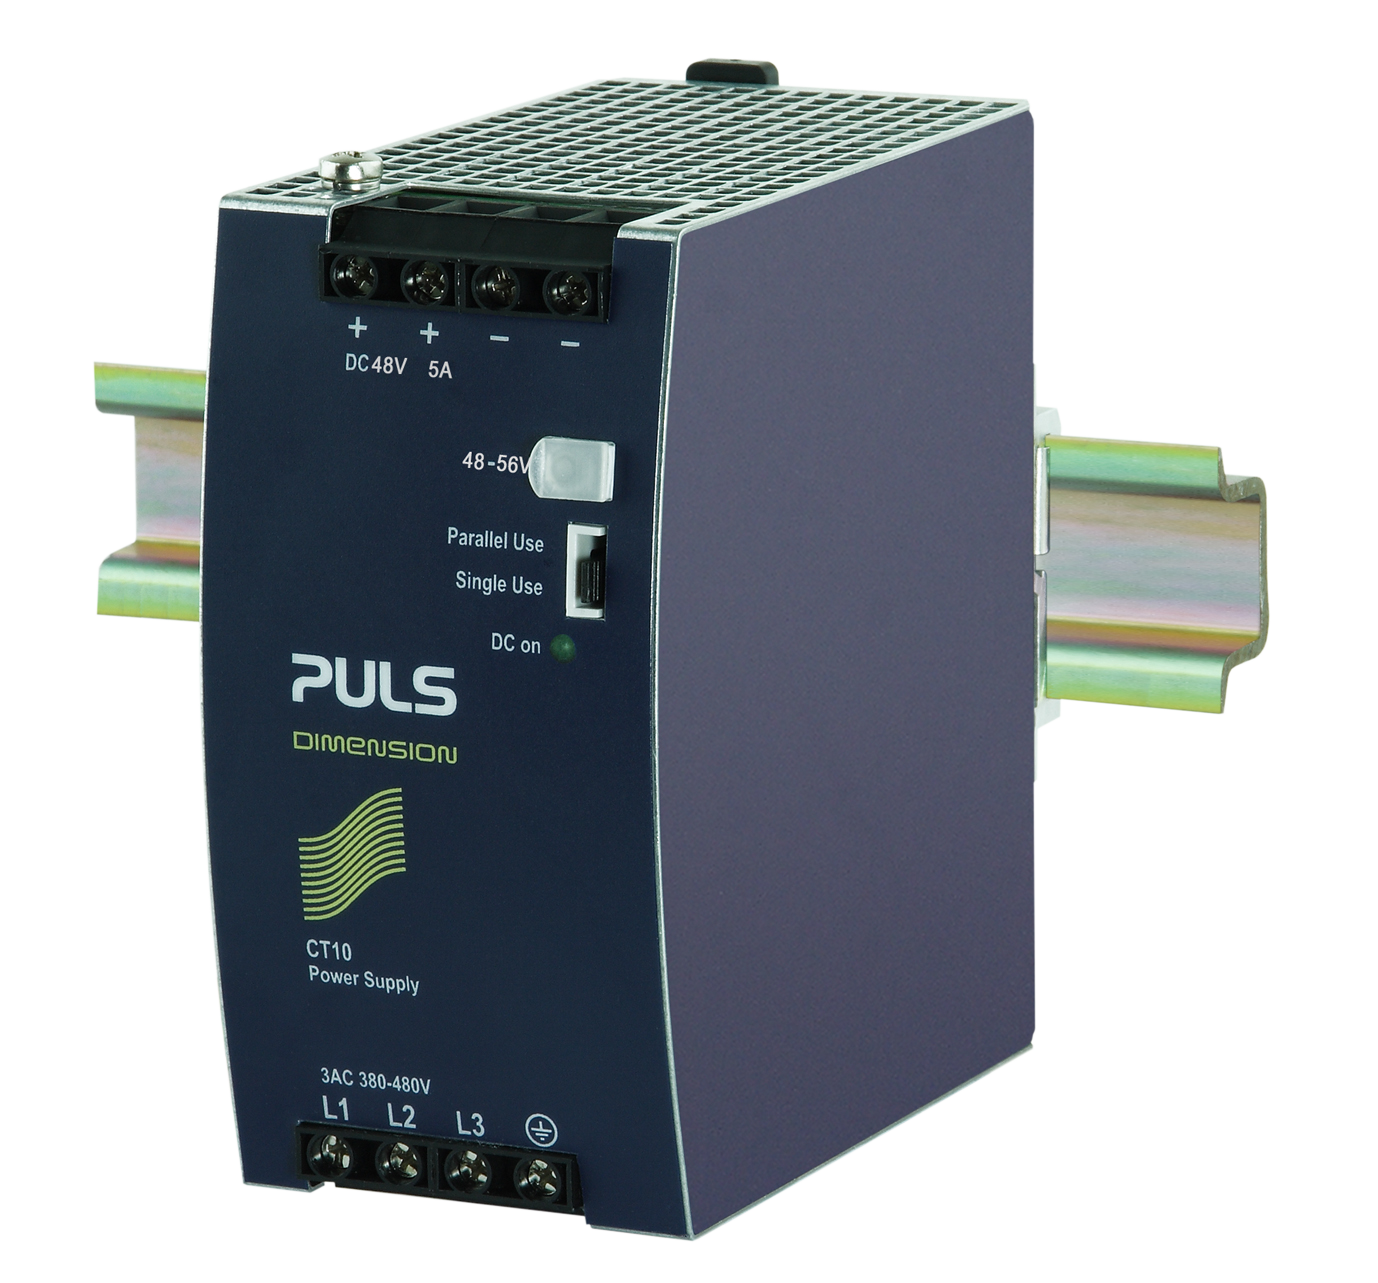 3 phase power supply Three-phase electric power is a common method of alternating current electric power generation, transmission, and distribution it is a type of polyphase system and is the most common method used by electrical grids worldwide to transfer power.